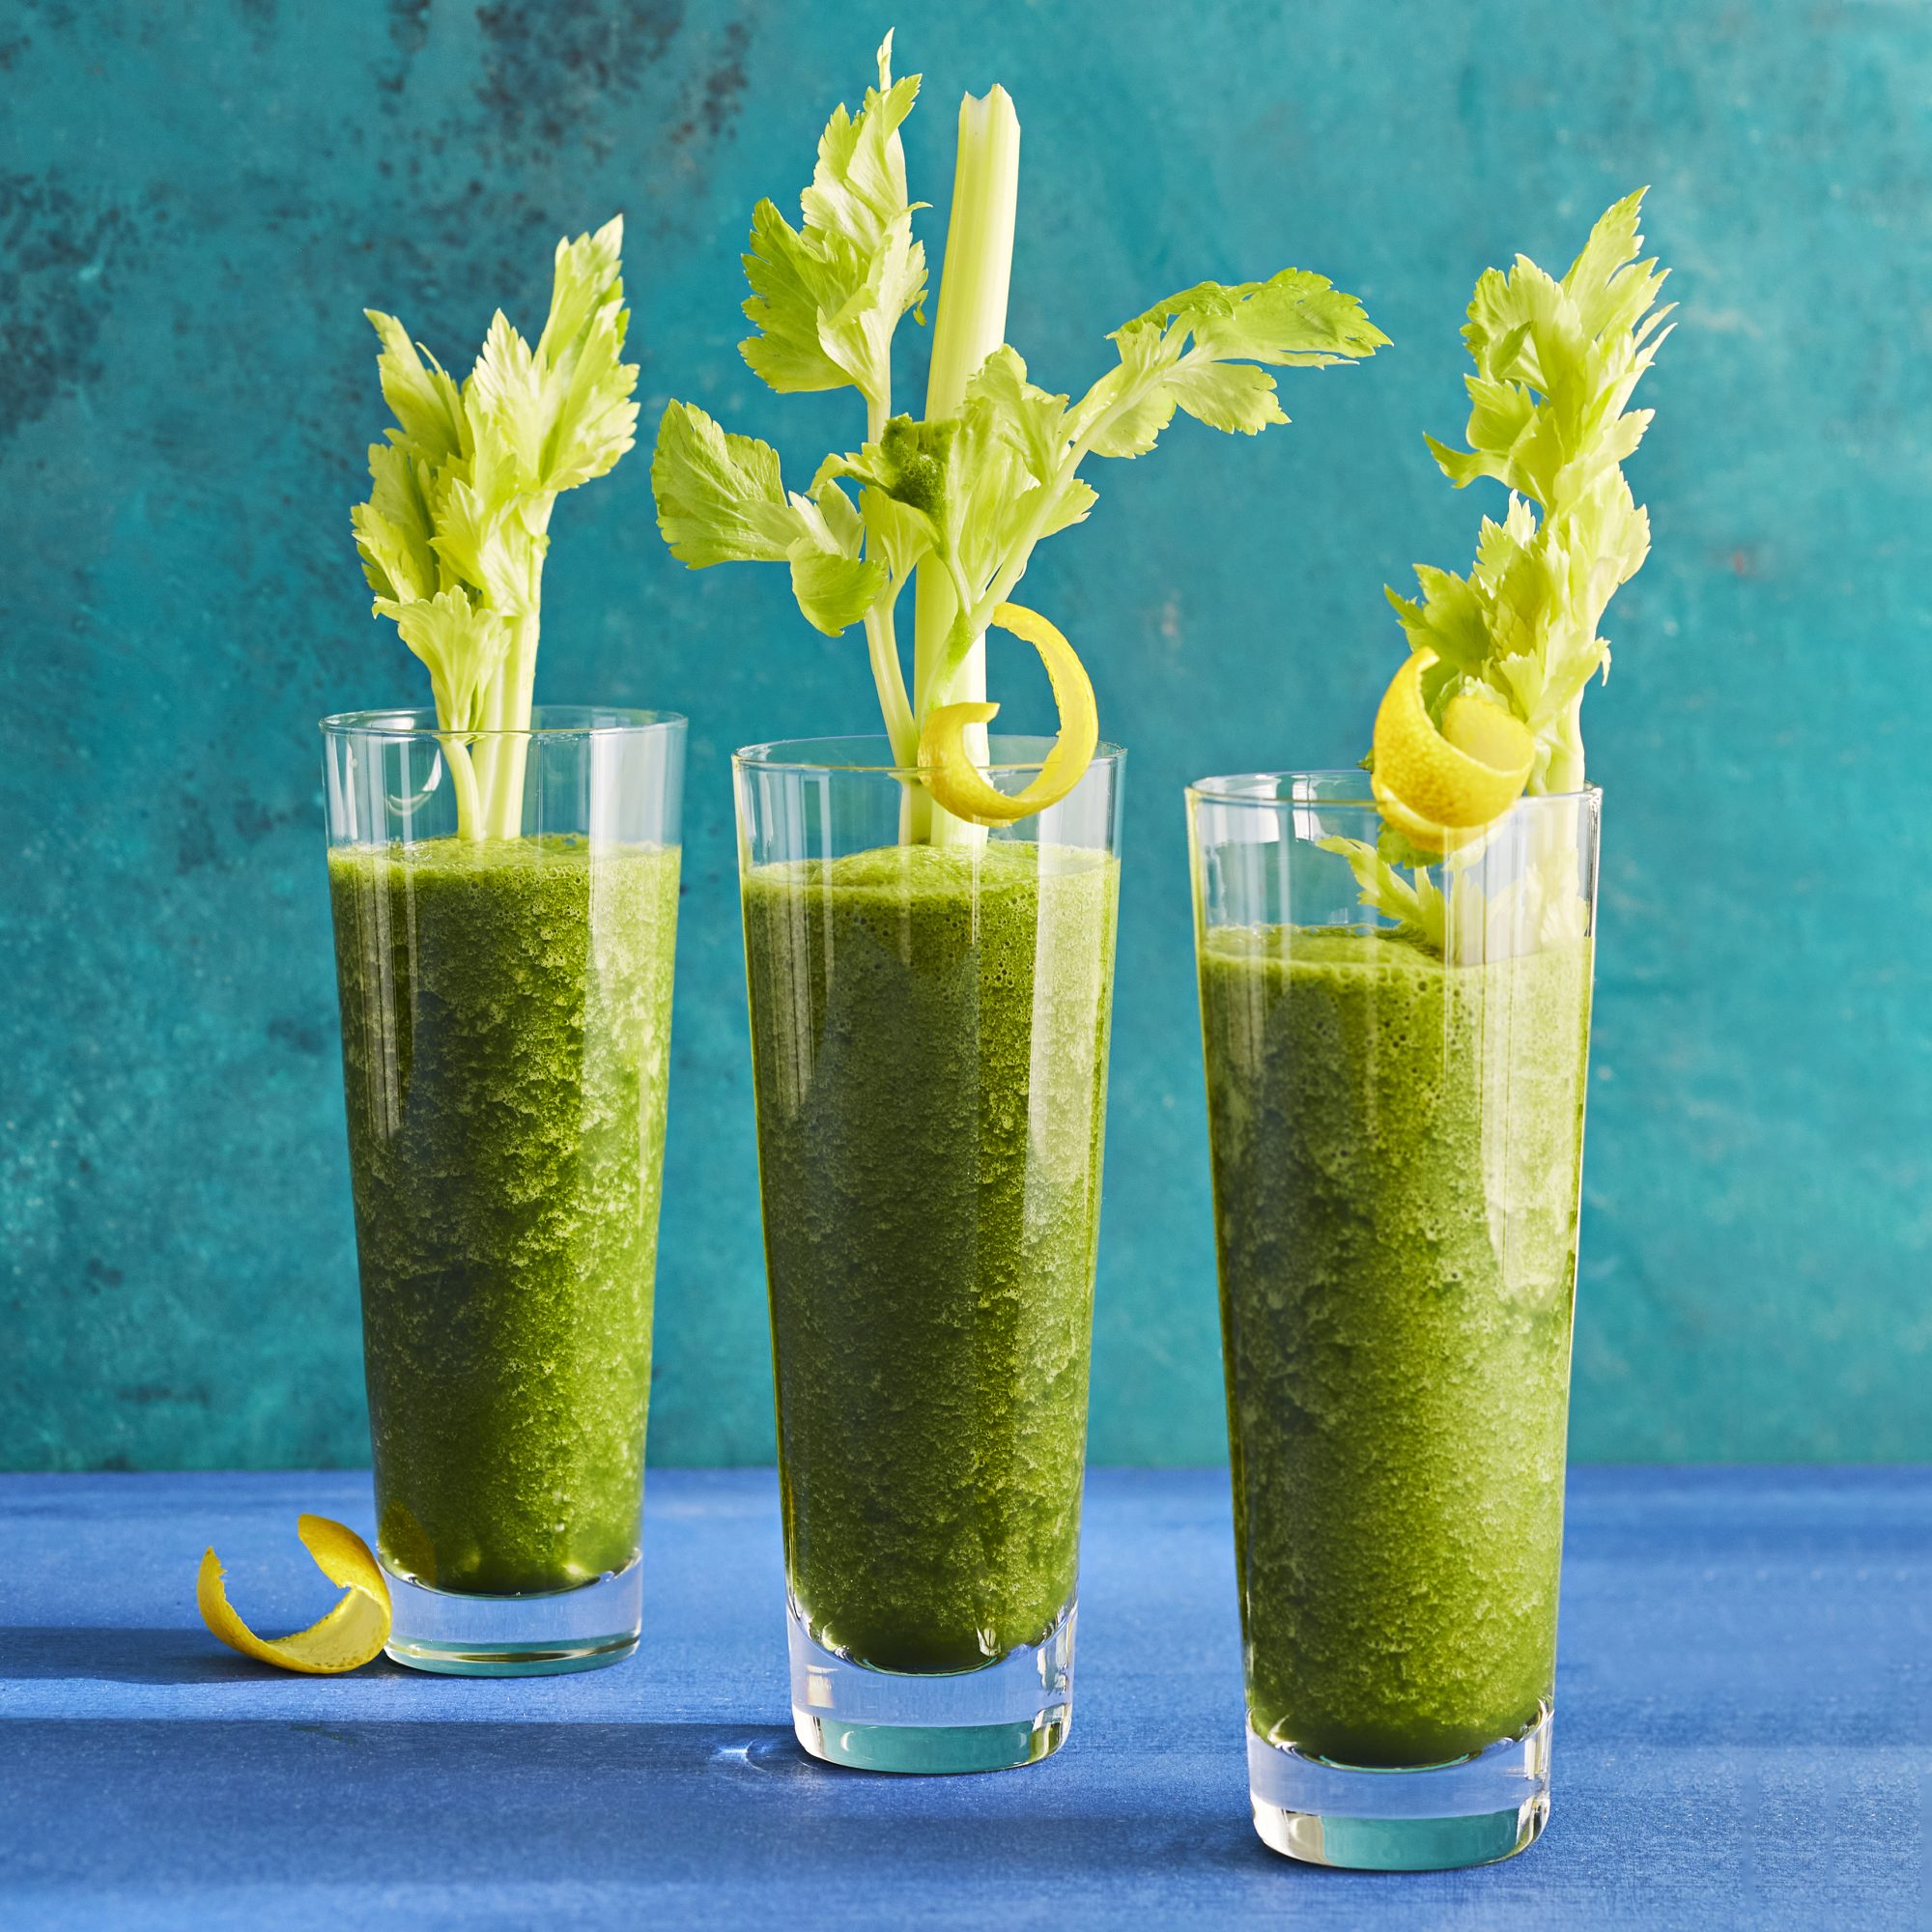 Three tall highball glasses filled with a midwinter green tonic. garnished with a stick of celery and lemon twist